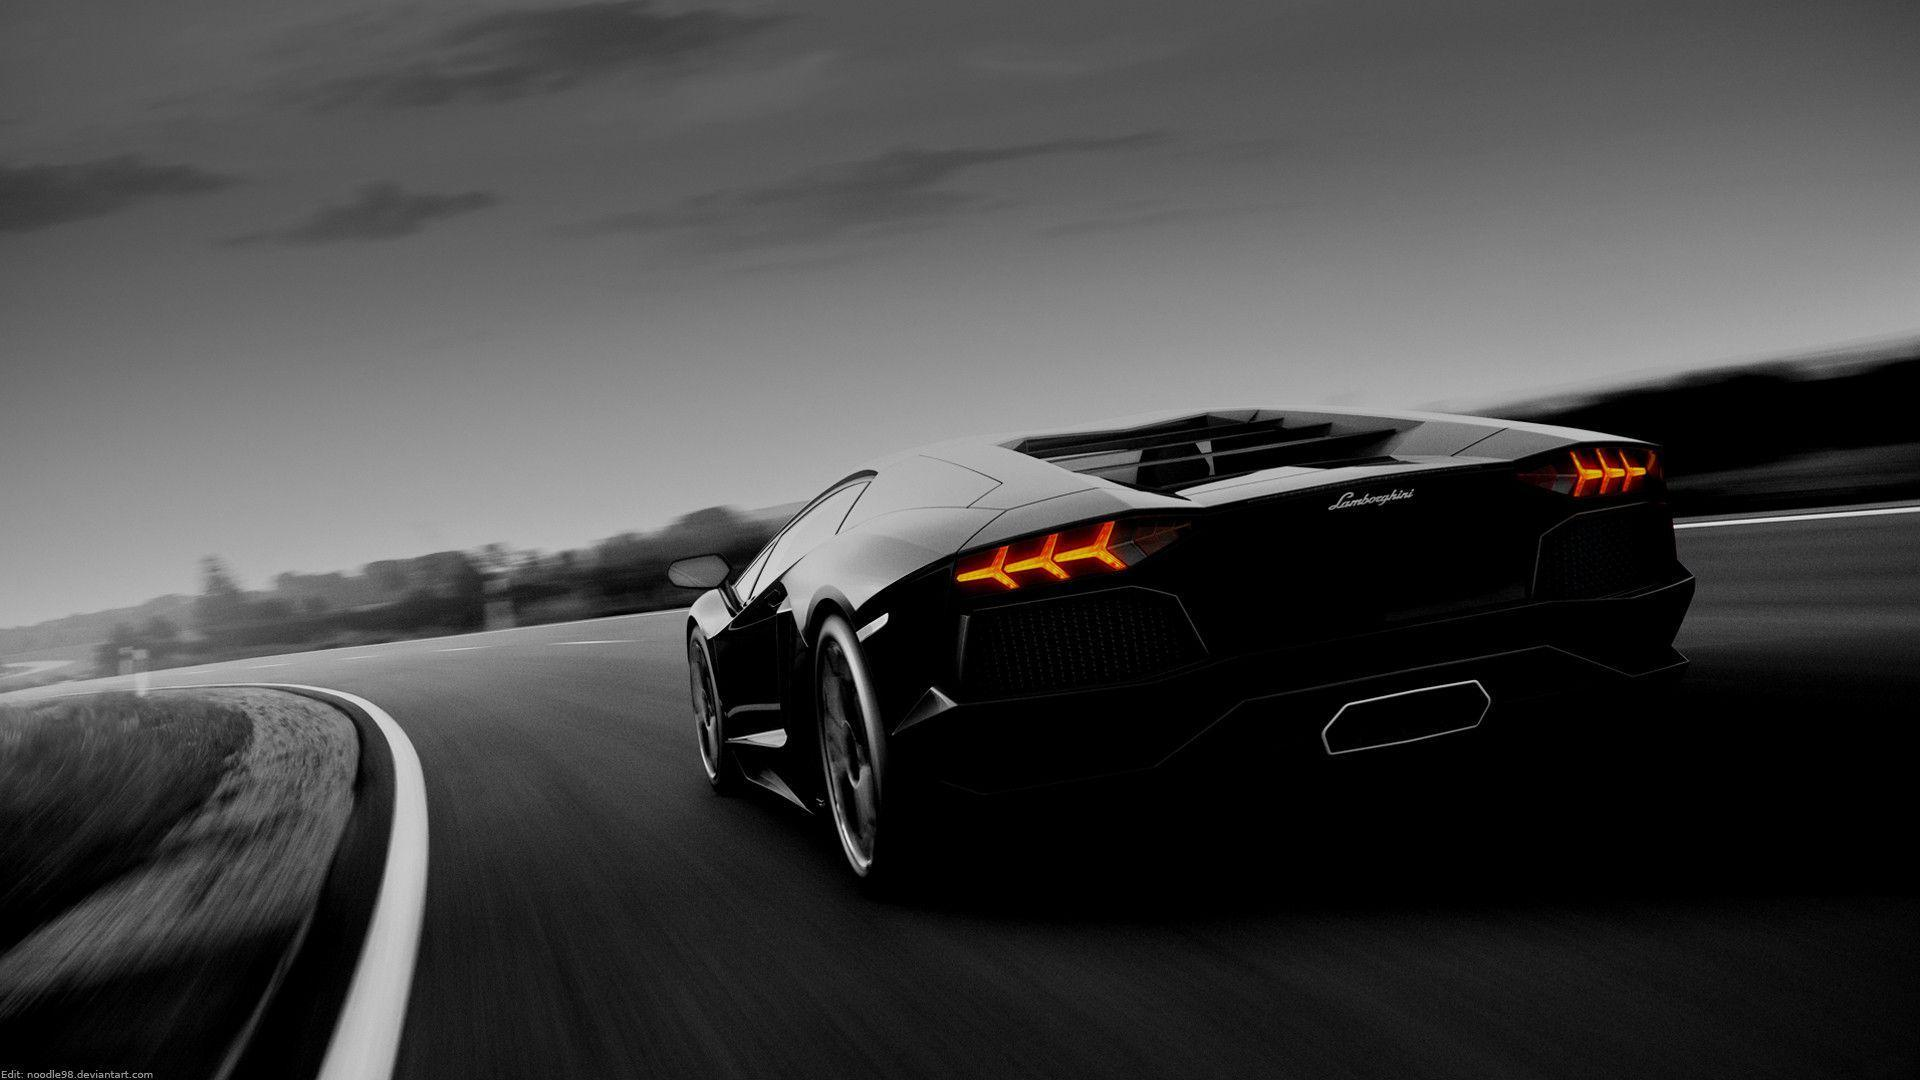 Hd wallpaper lamborghini - Lamborghini Aventador Wallpaper 30 Backgrounds Wallruru